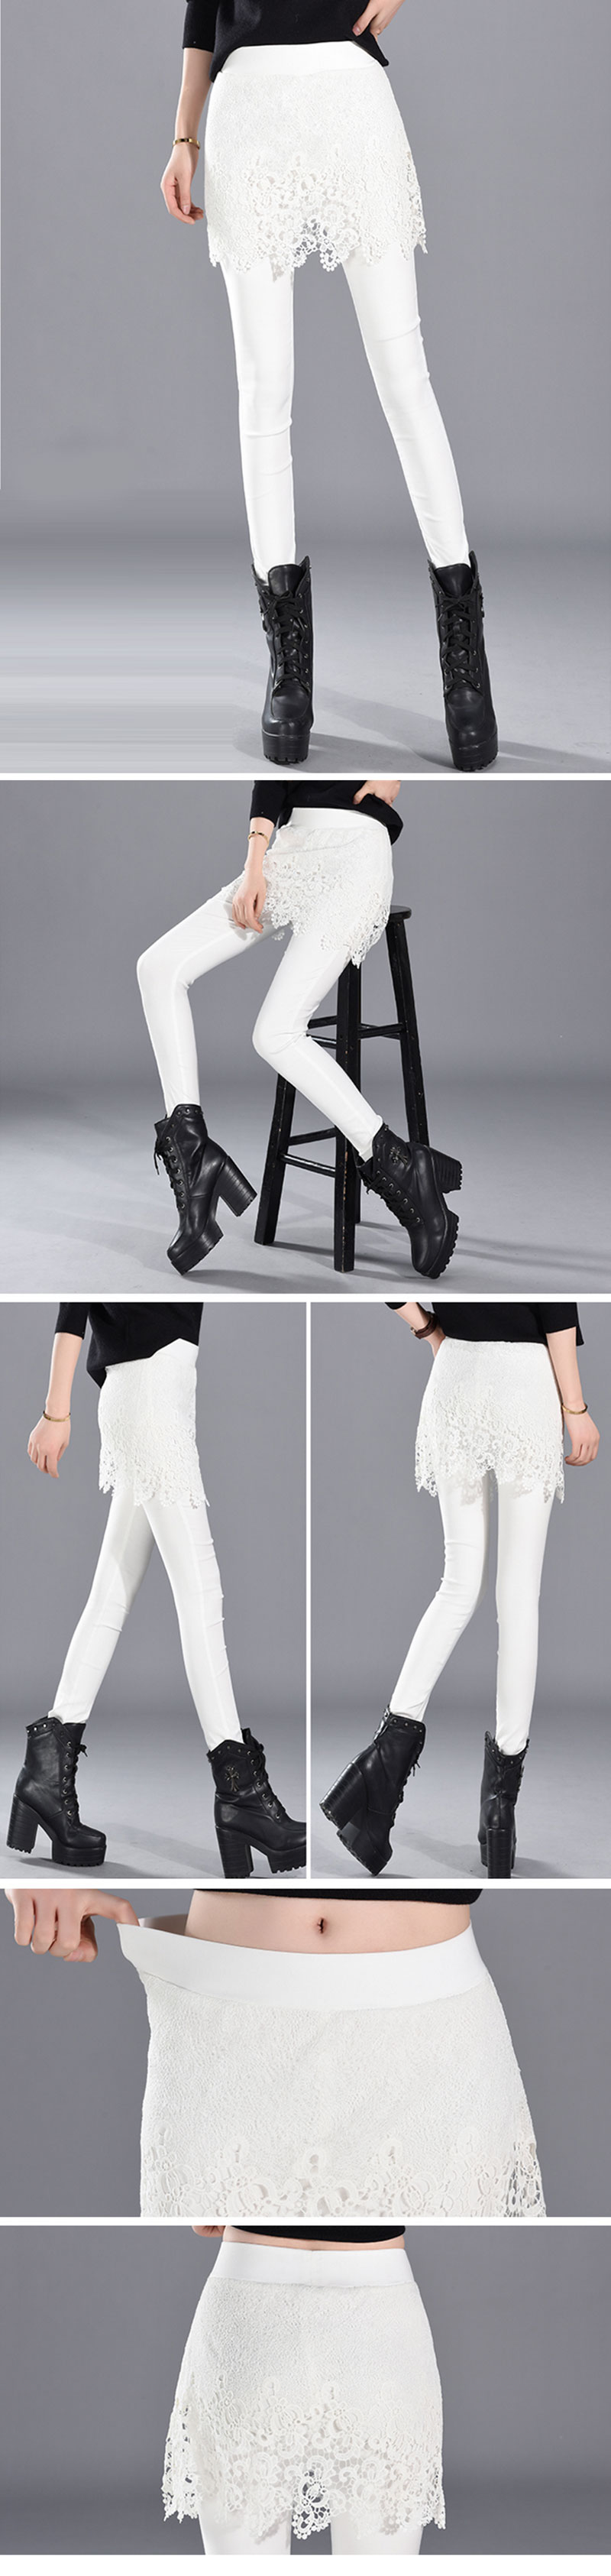 False-two-skirts-pants-Cultivate-one's-morality-to-wear-lace-and-velvet_02